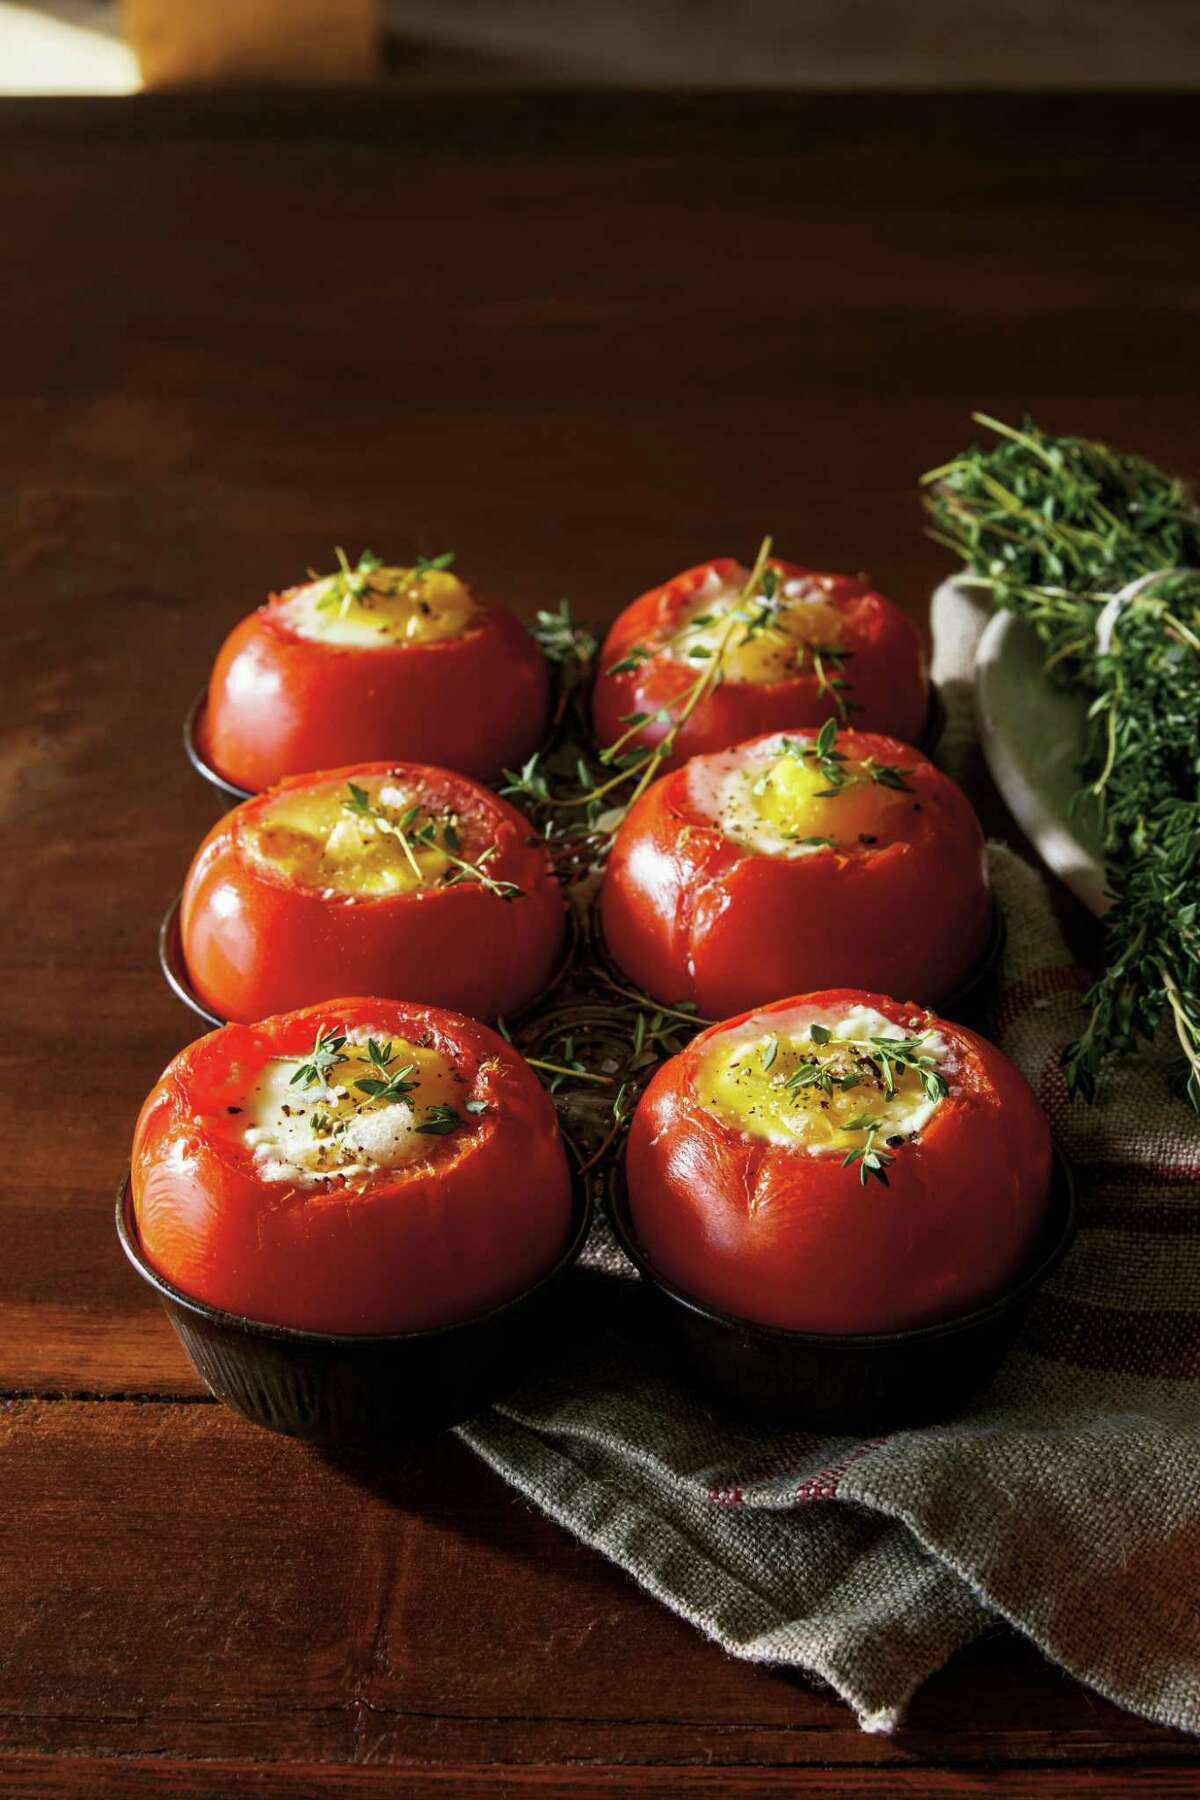 Stuffed Tomatoes from 'The Official Downton Abbey Cookbook' by Annie Gray